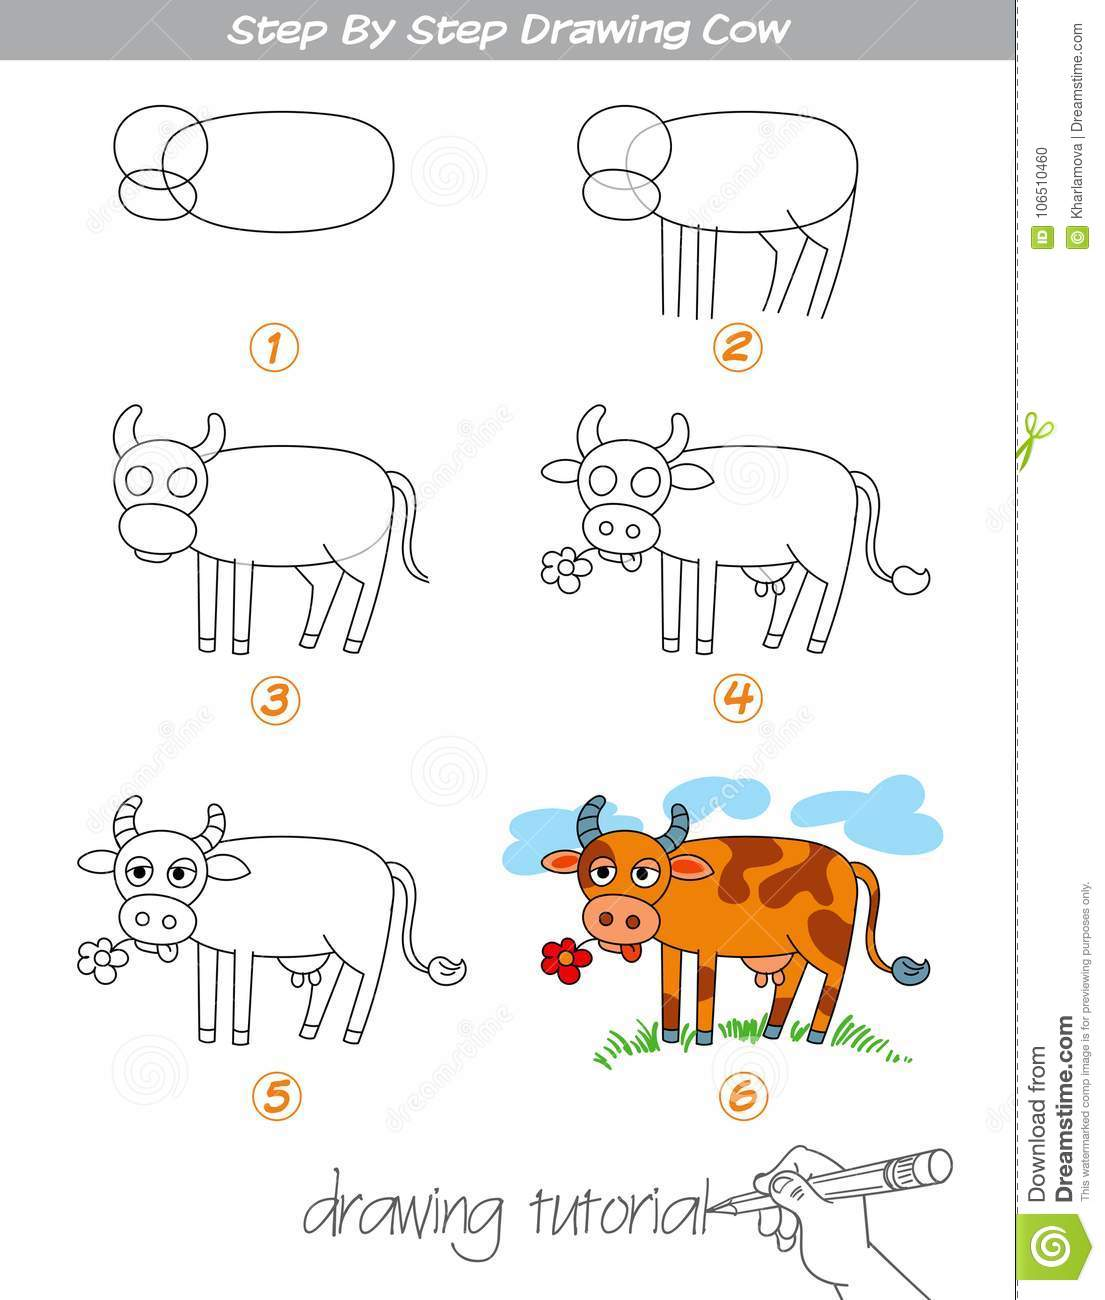 Step By Step Drawing Cow Stock Vector Illustration Of Image 106510460